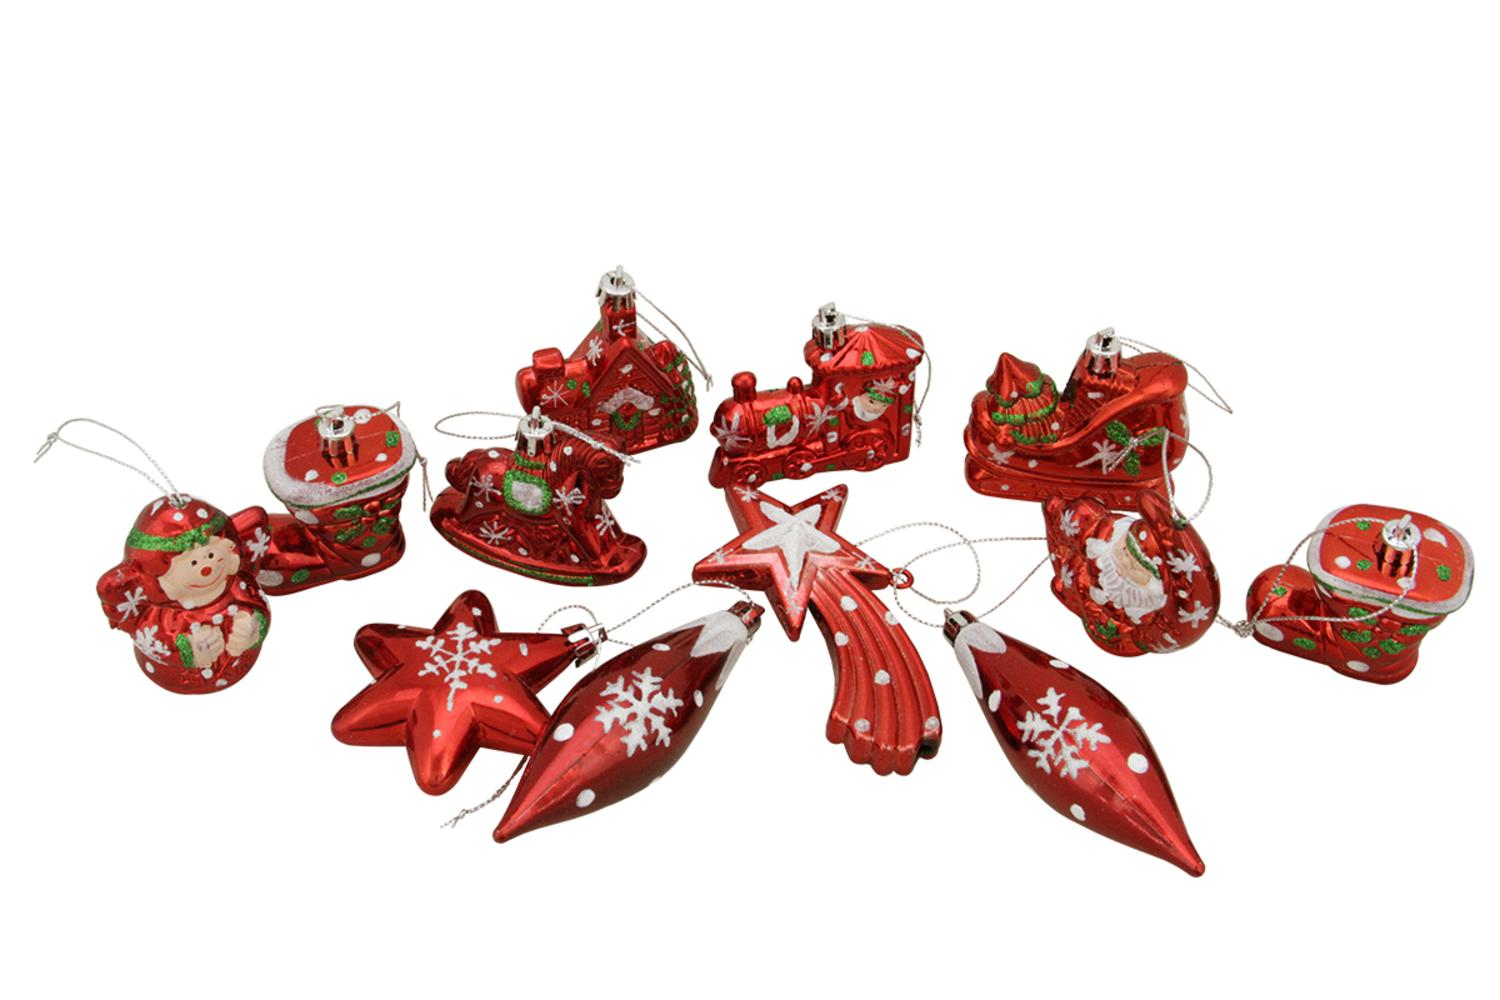 12ct Shiny Red HOLIDAY Themed Glittered Shatterproof Christmas Ornaments